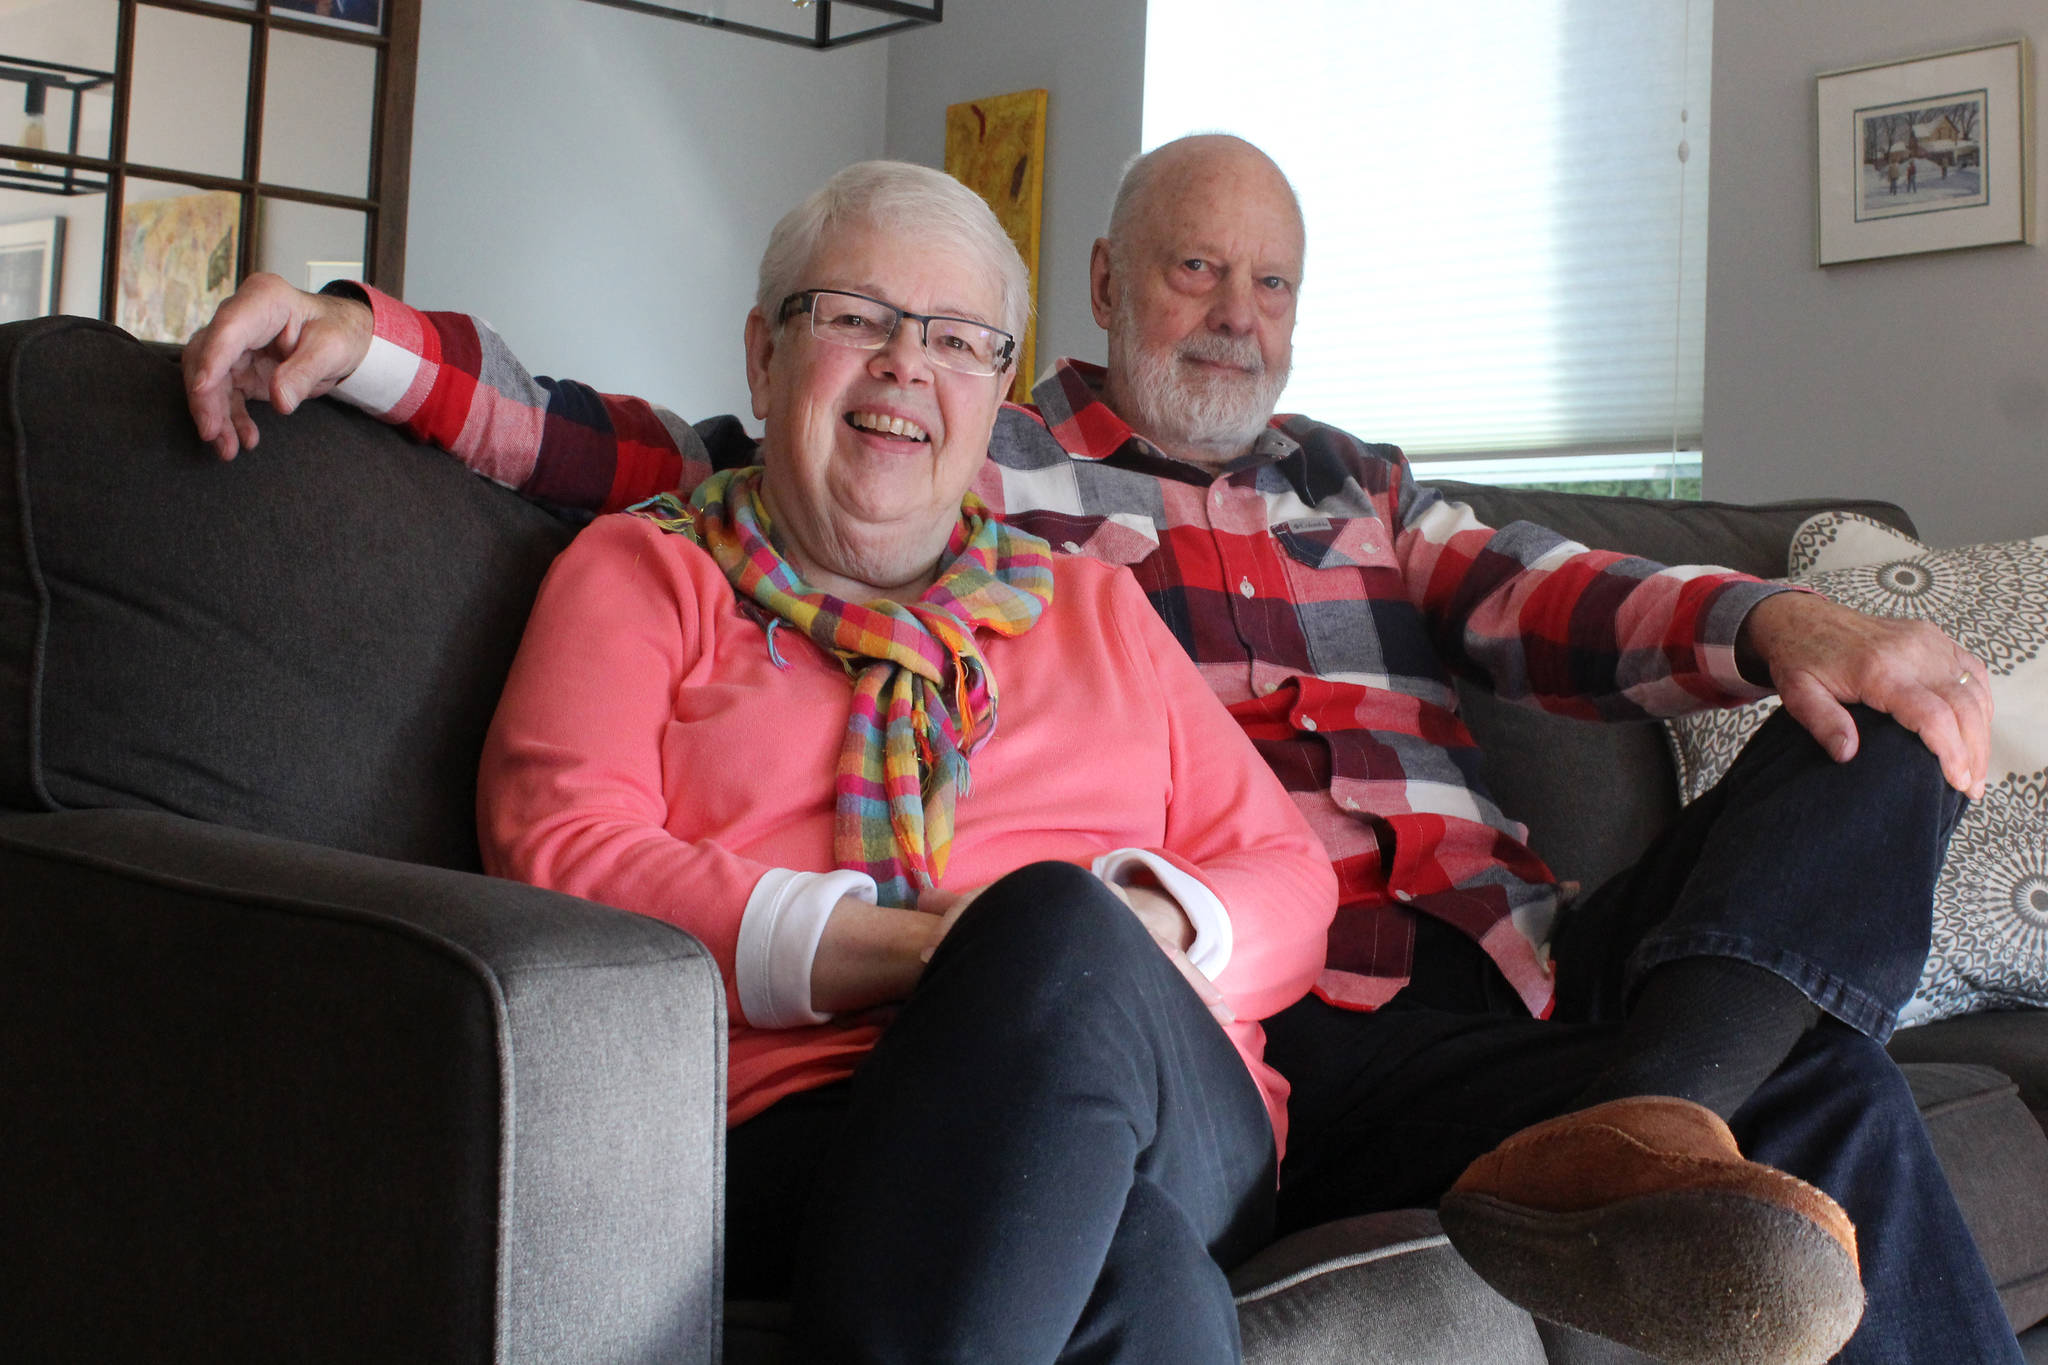 Courtenay couple Doris McLaughlin and her husband Don share their stories about their respective heart attacks - and the unique symptoms - in hopes to spread awareness during heart month in February. Photo by Erin Haluschak